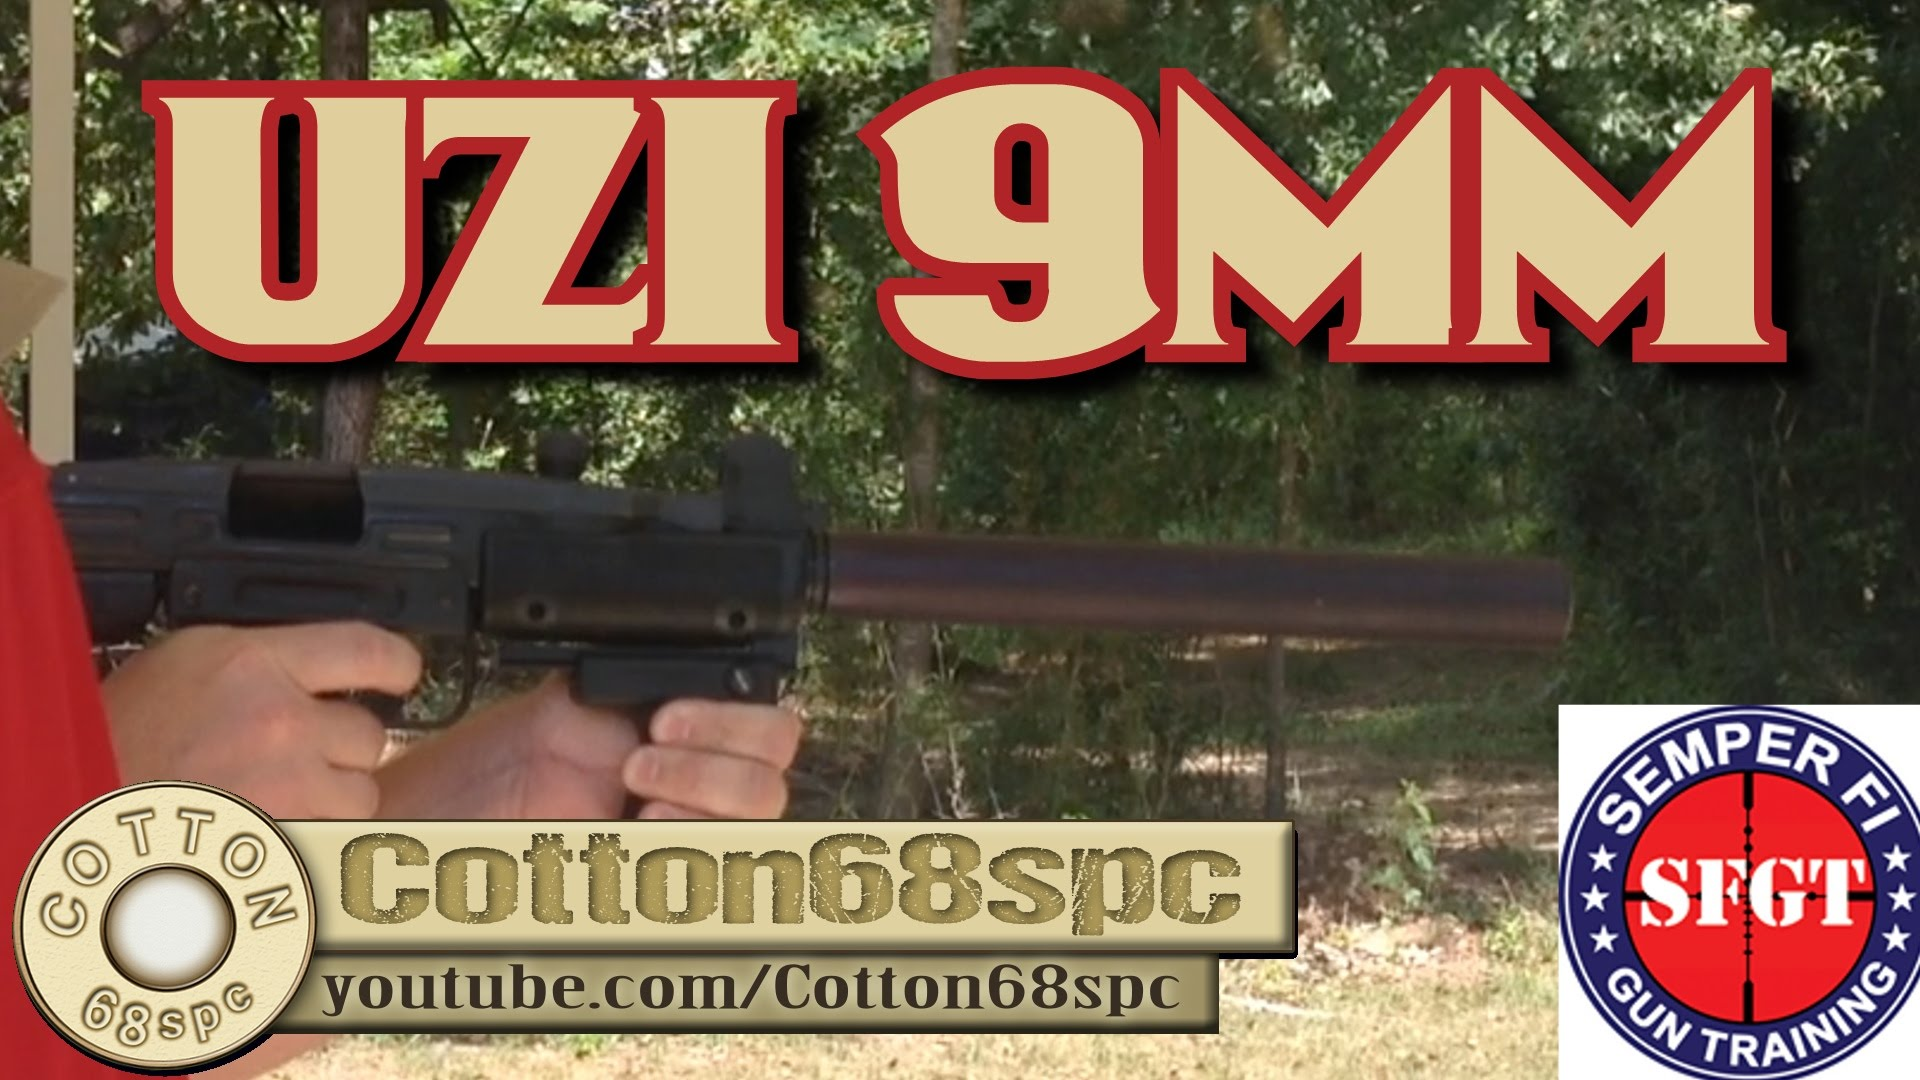 9mm UZI Submachine Gun